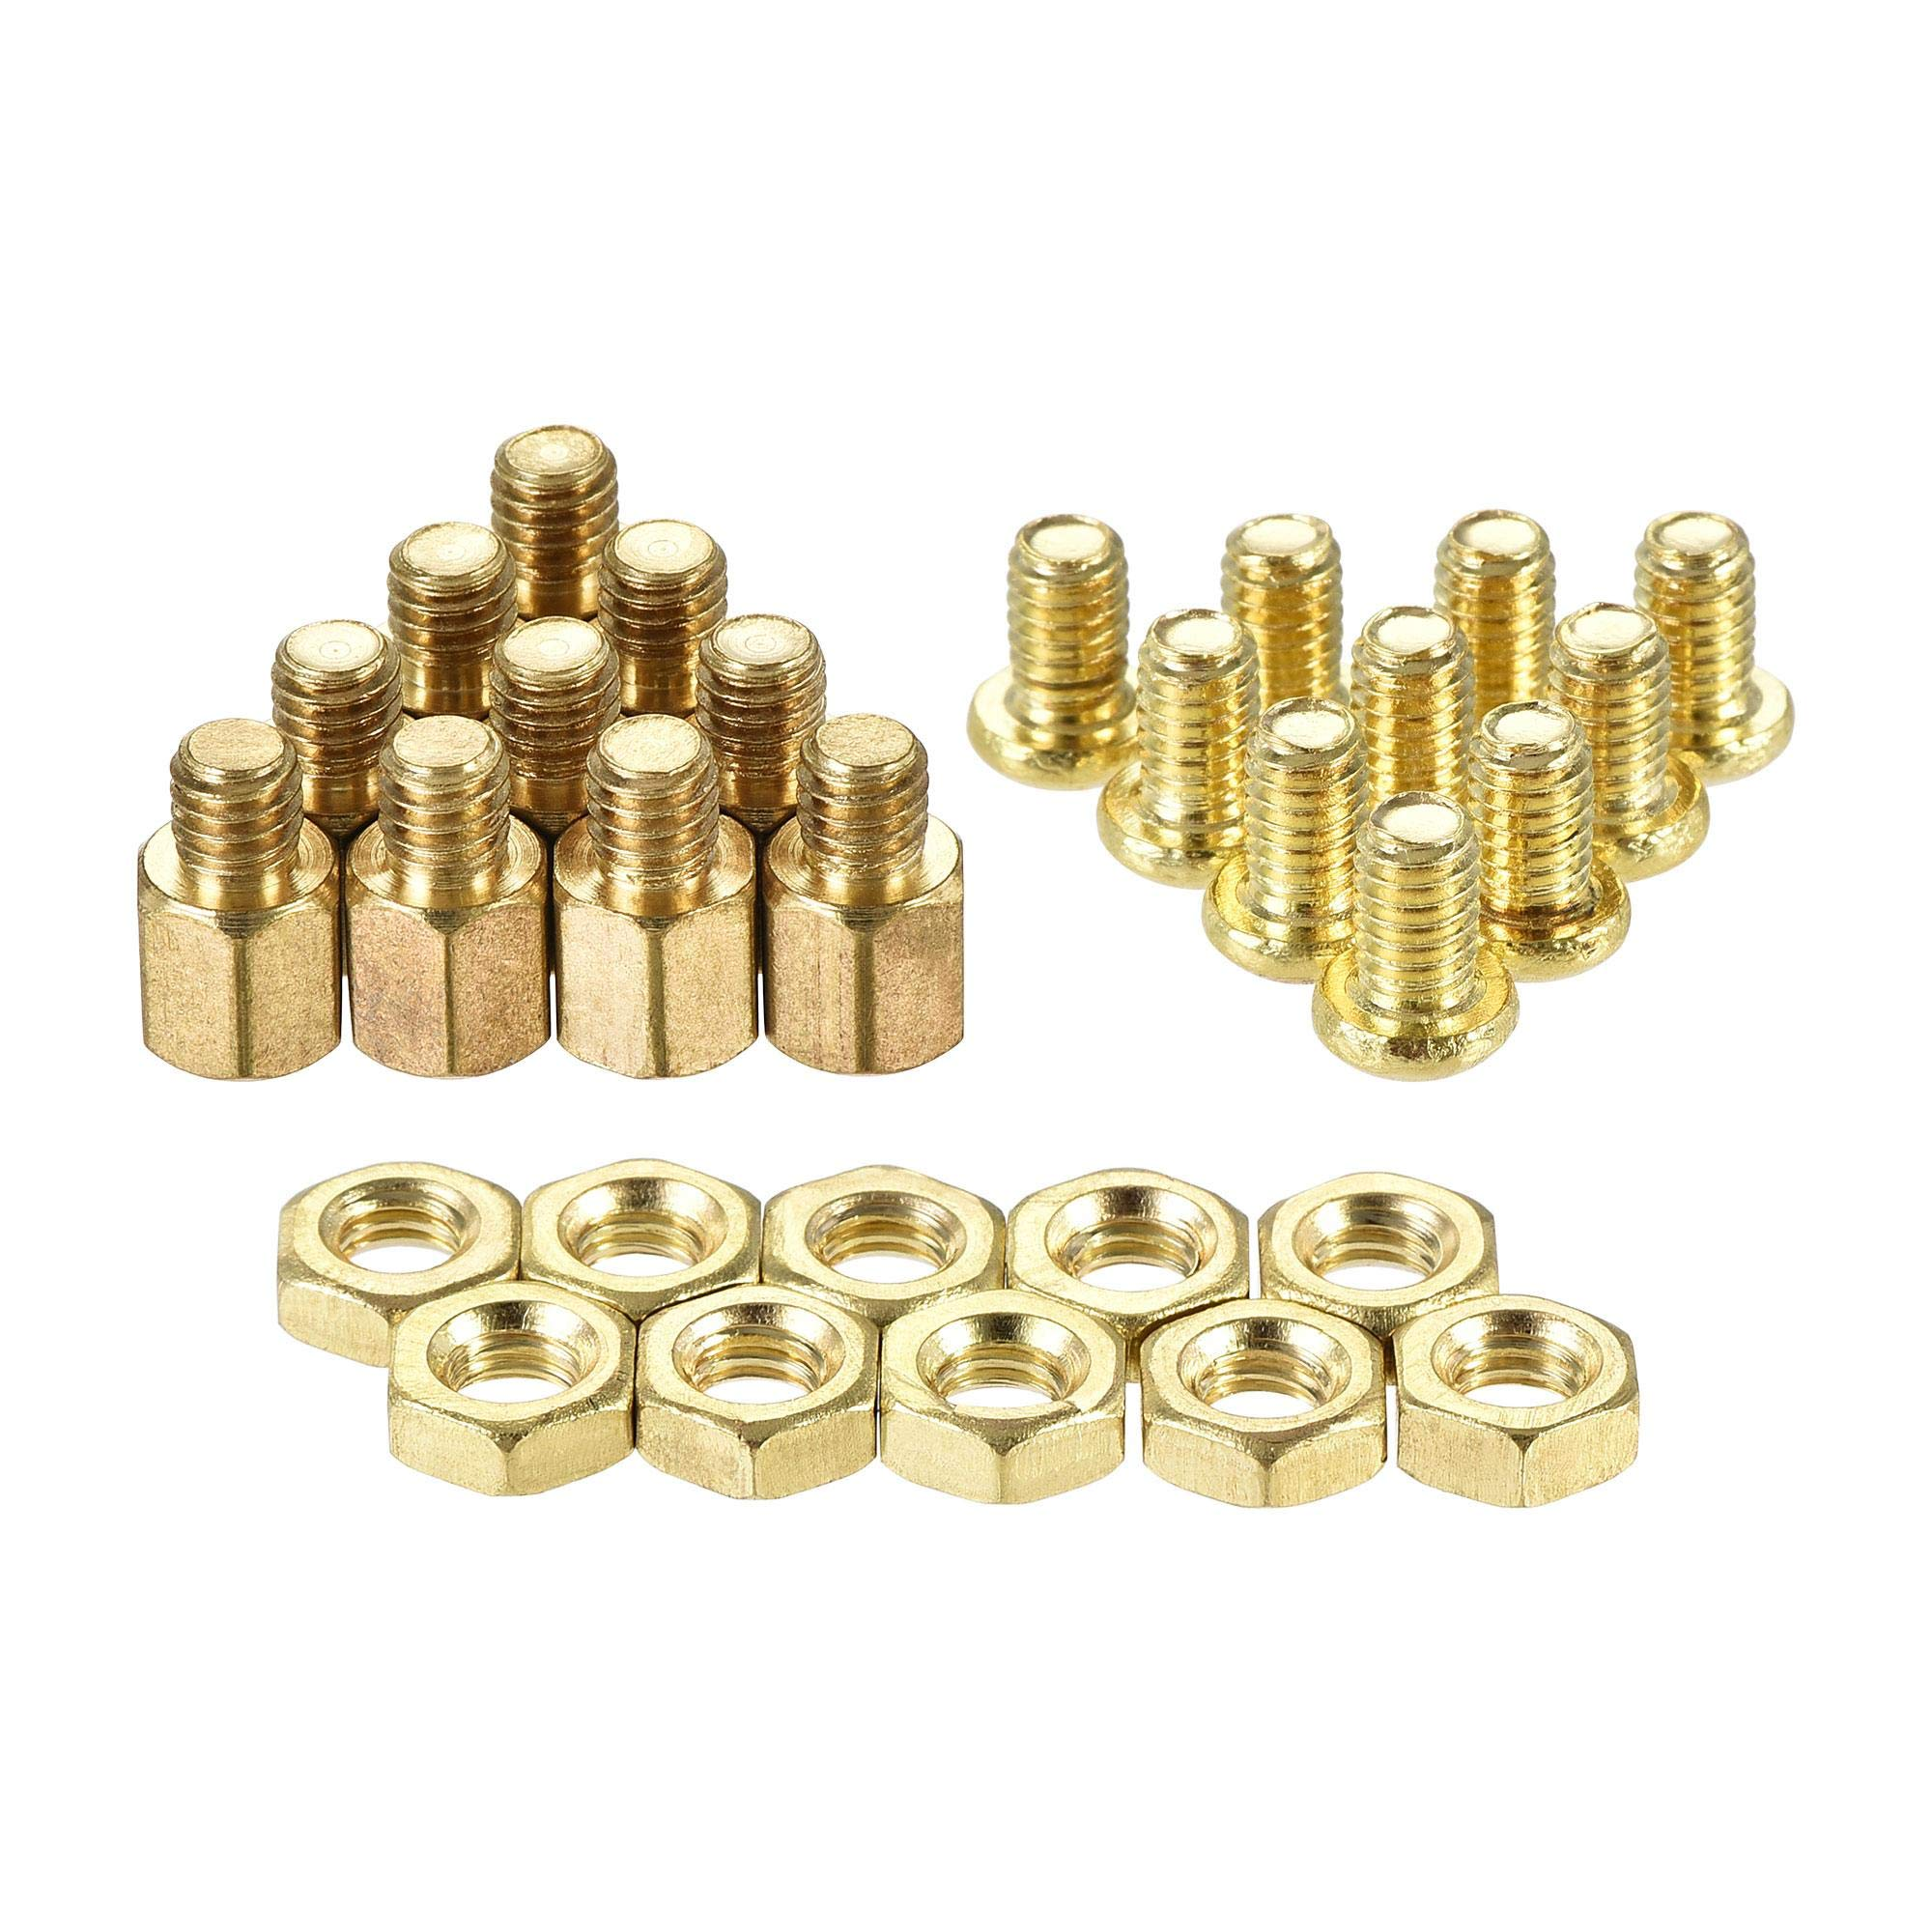 uxcell M4 Hex Brass Standoff Spacer 6mm+4mm Male-Female Threaded Pillar Screw Nut Kit for PCB Motherboard Computer Circuit Board, 20 Sets